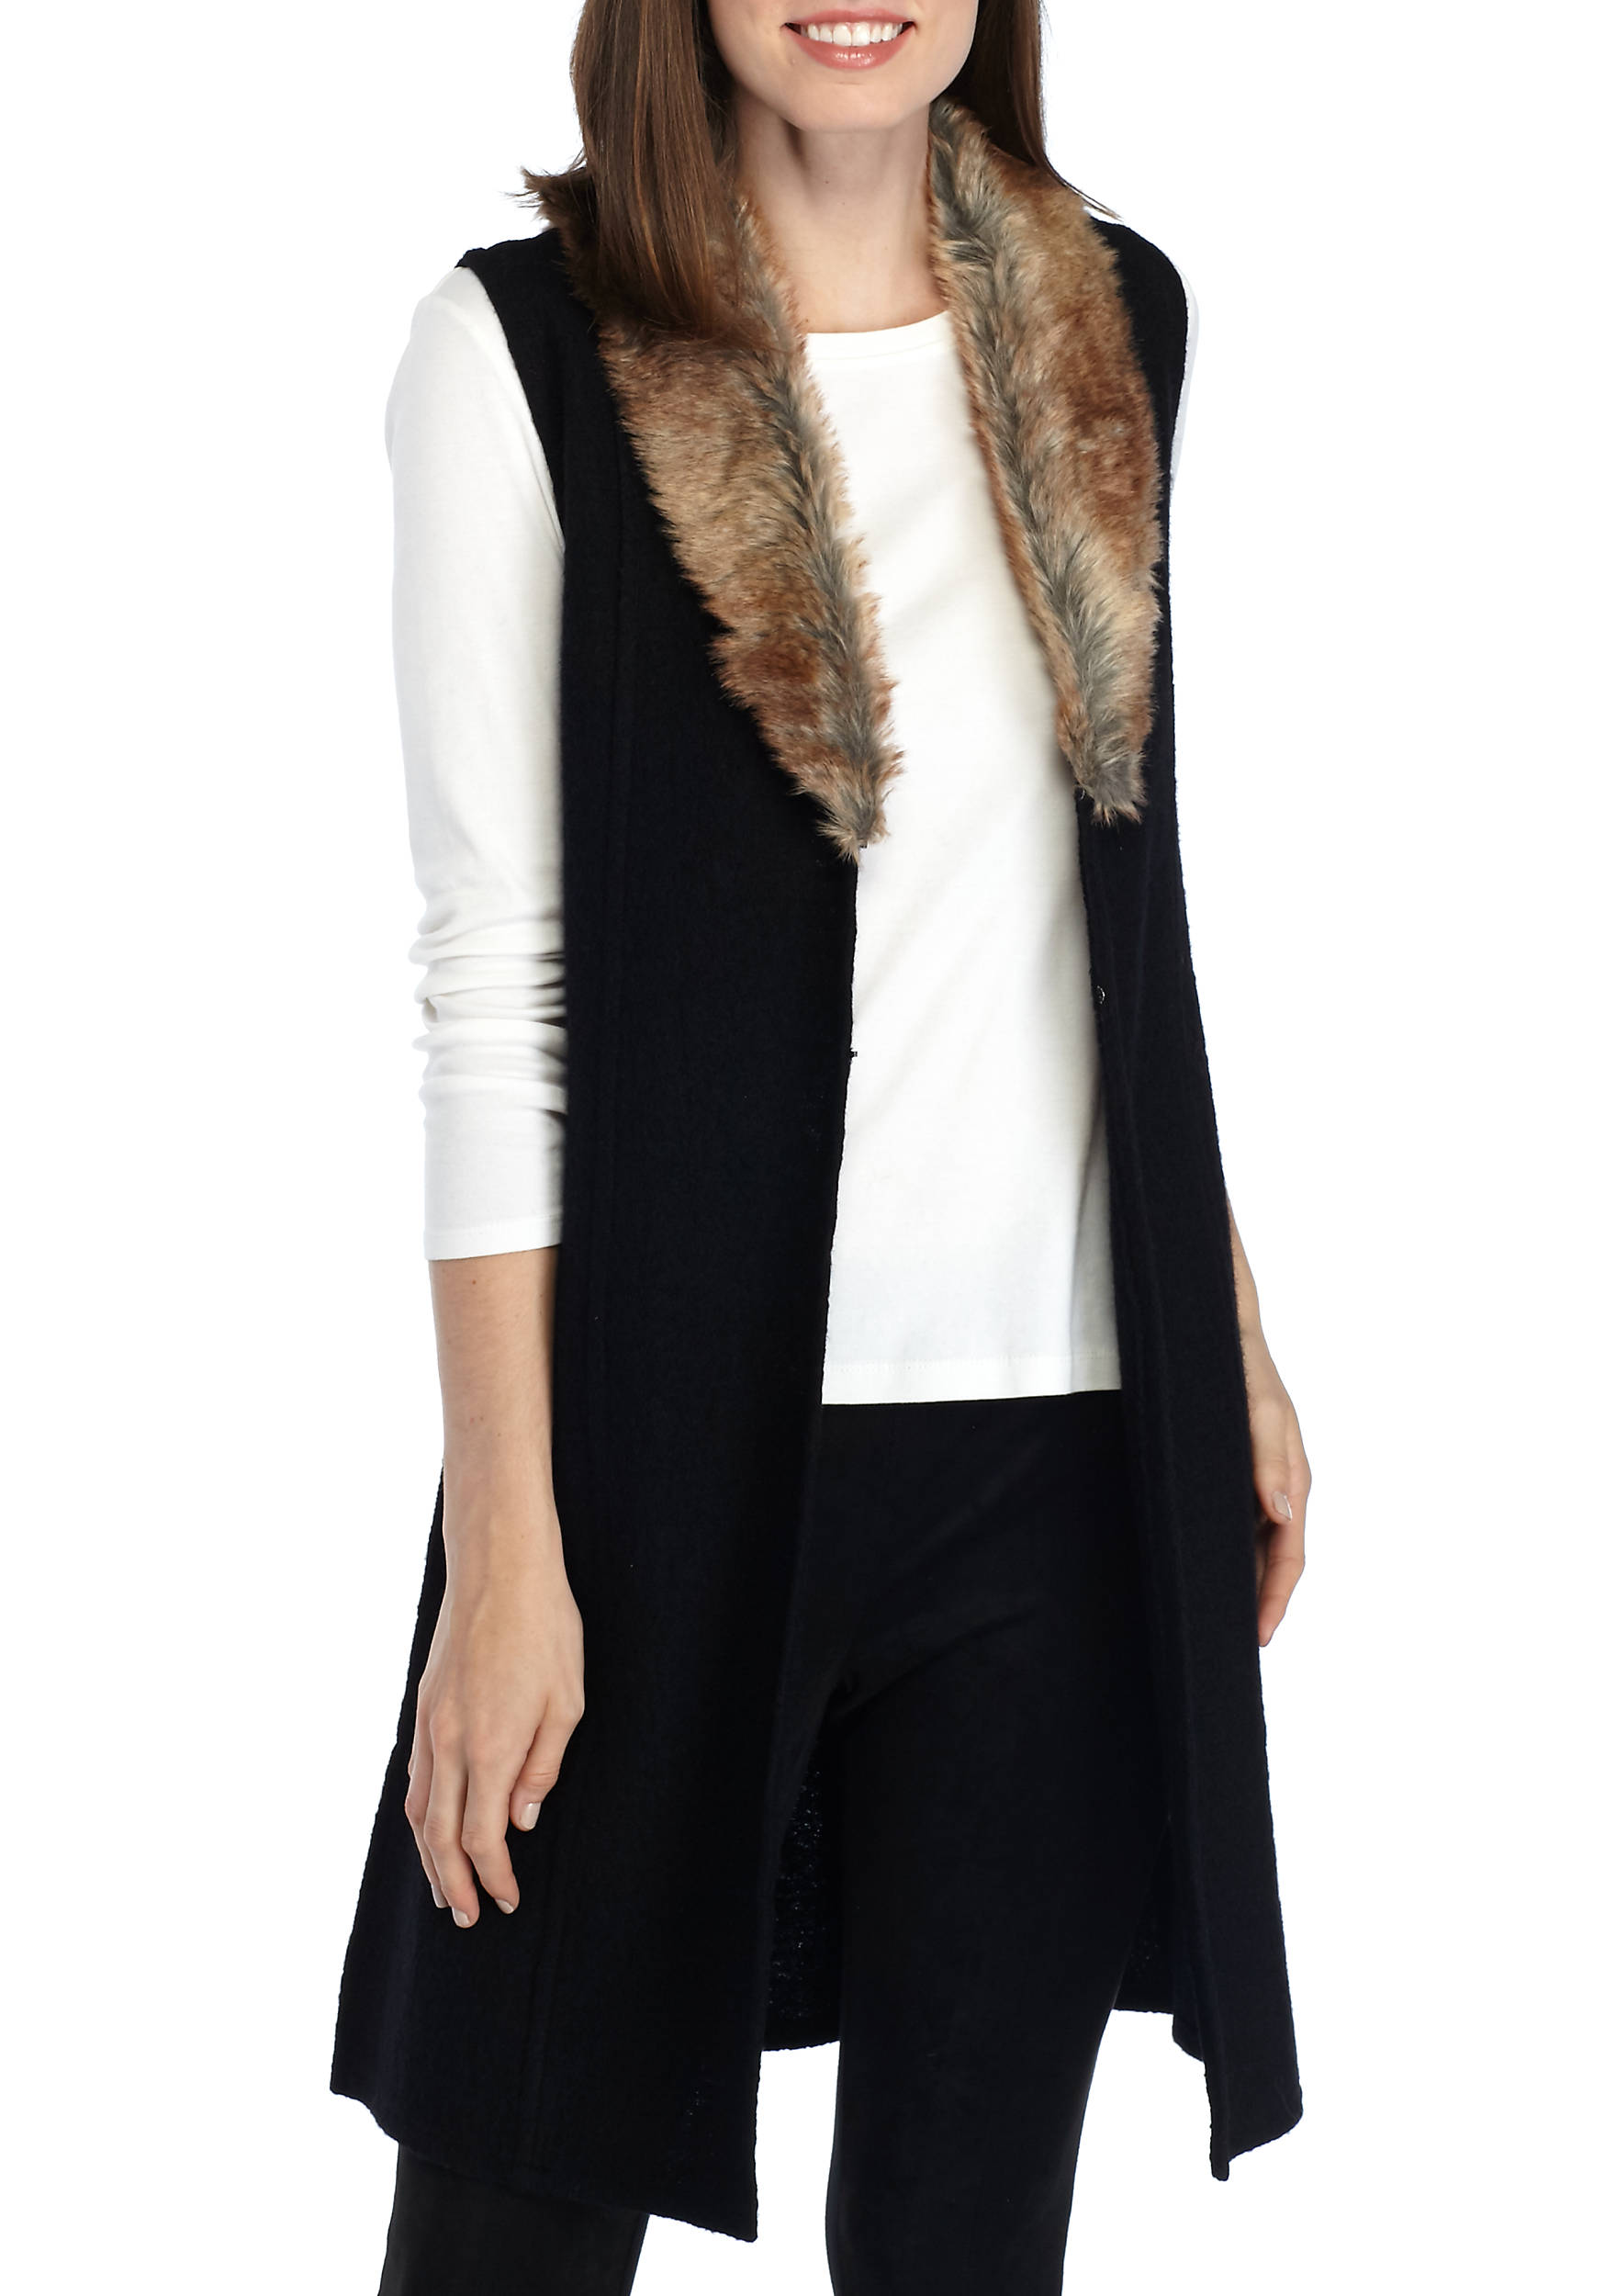 Nine West Long Sweater Vest with Fur Collar | belk